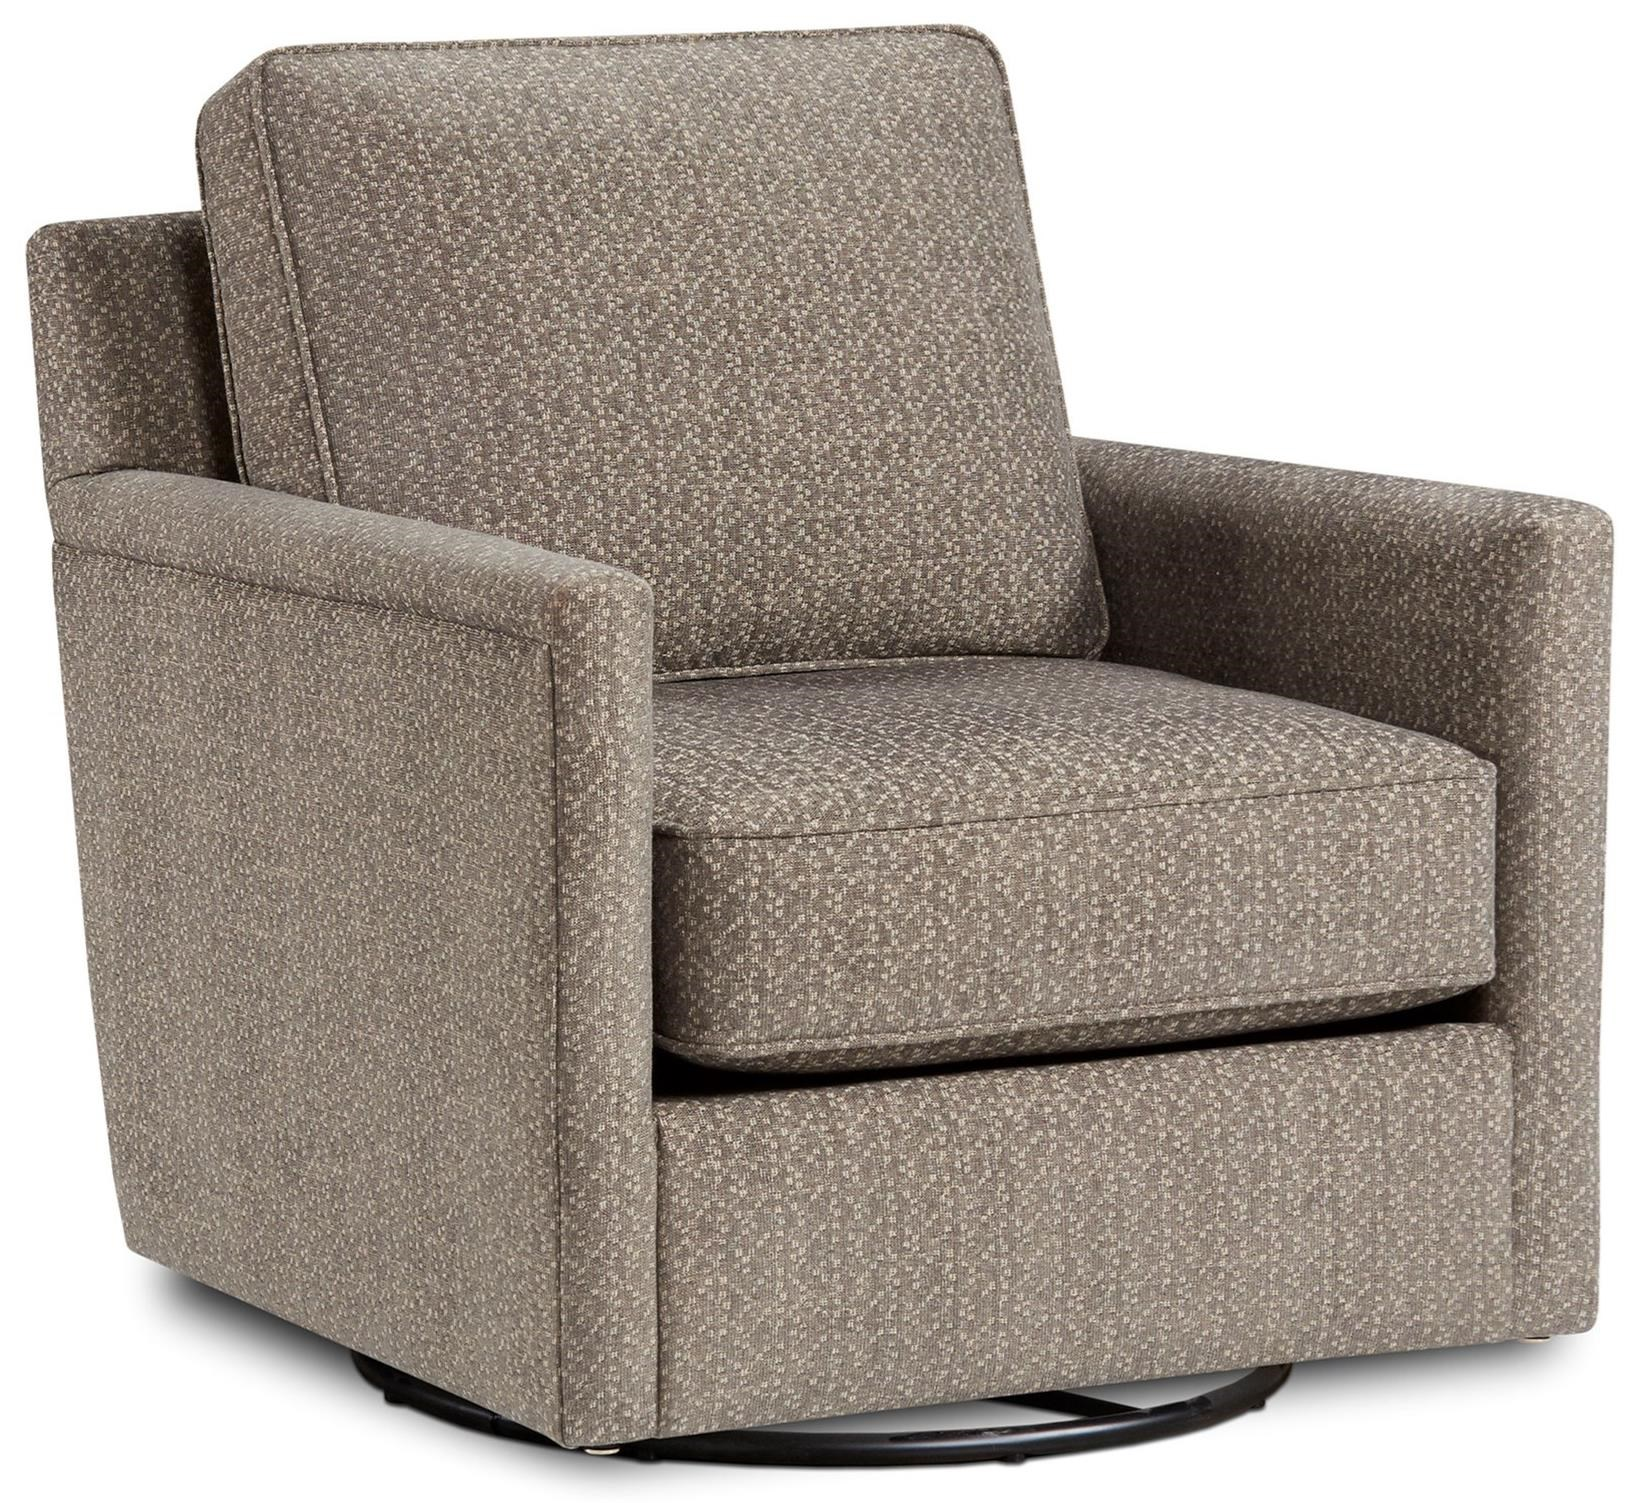 21-02 Swivel Glider Chair by Fusion Furniture at Prime Brothers Furniture